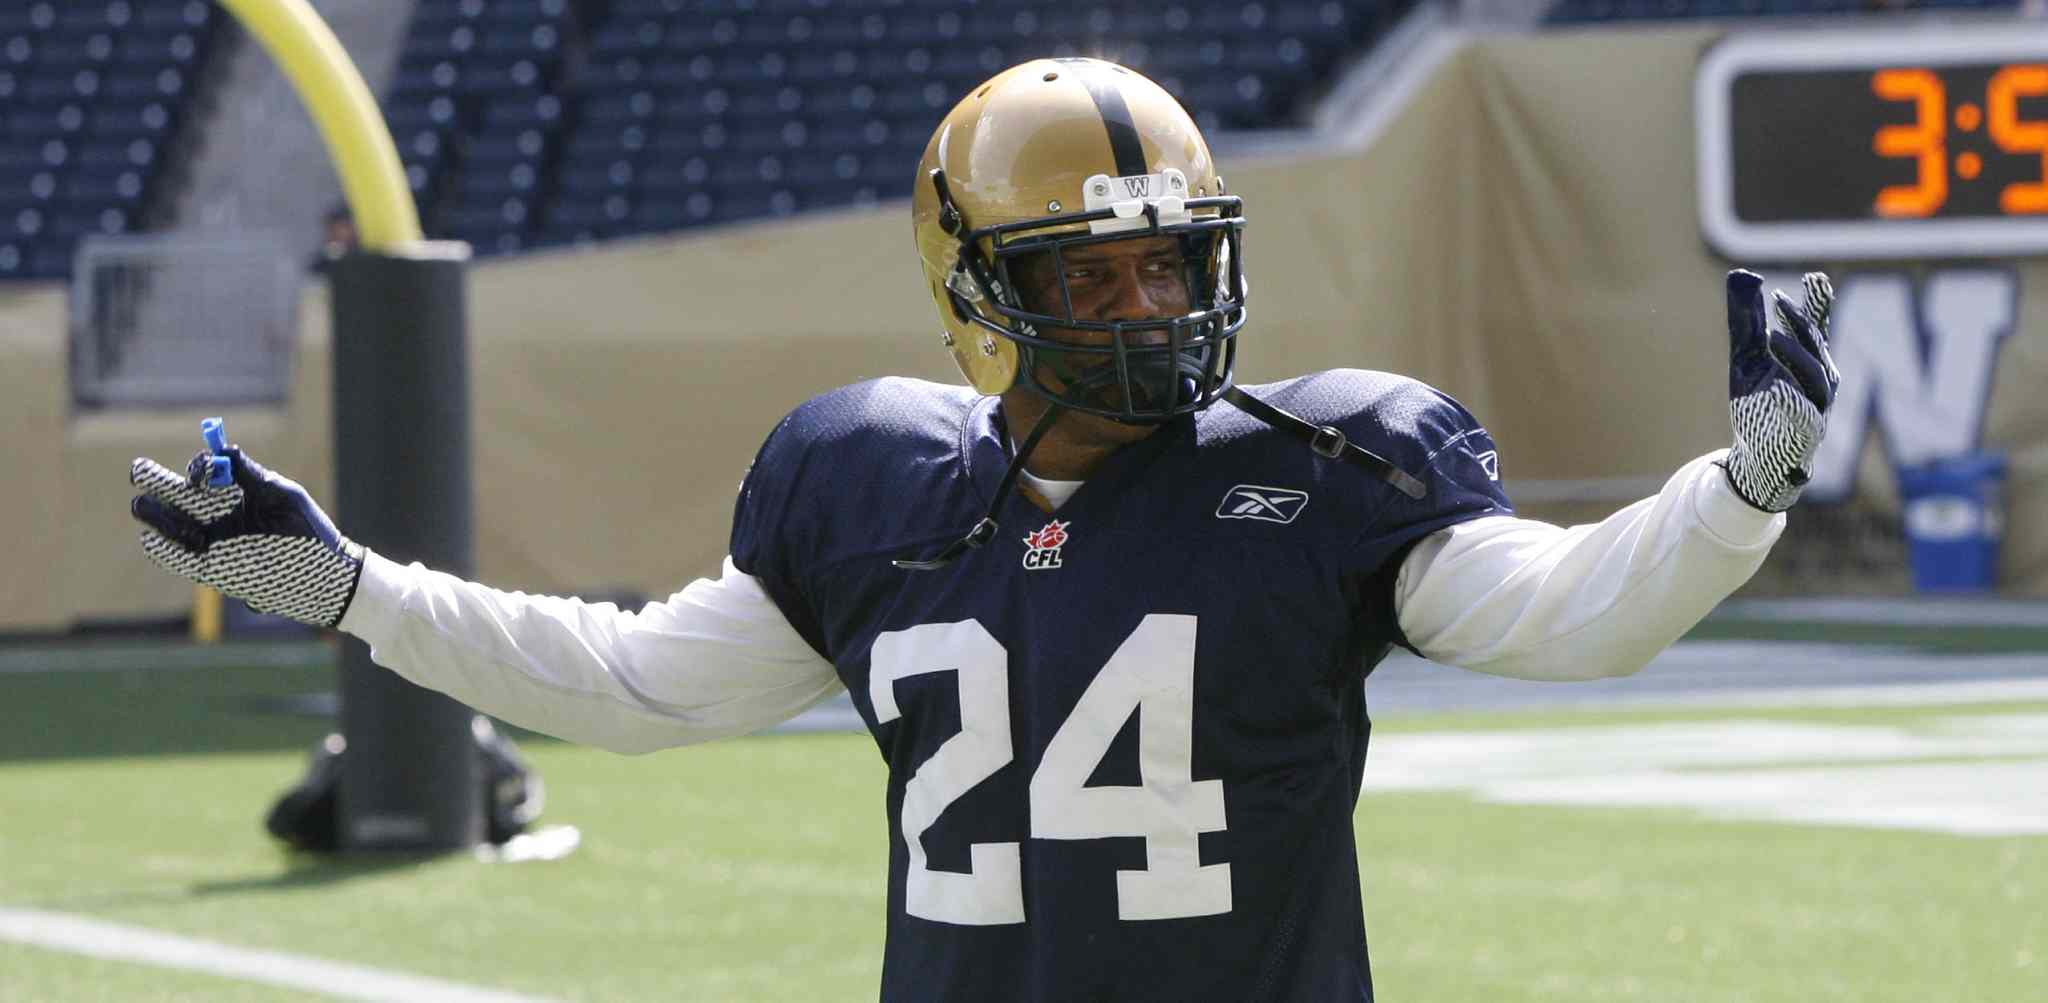 4-time CFL all-star Korey Banks had requested over the weekend that the club release him, but Bombers head coach Mike O'Shea said the team decided on Monday to instead suspend him without pay.